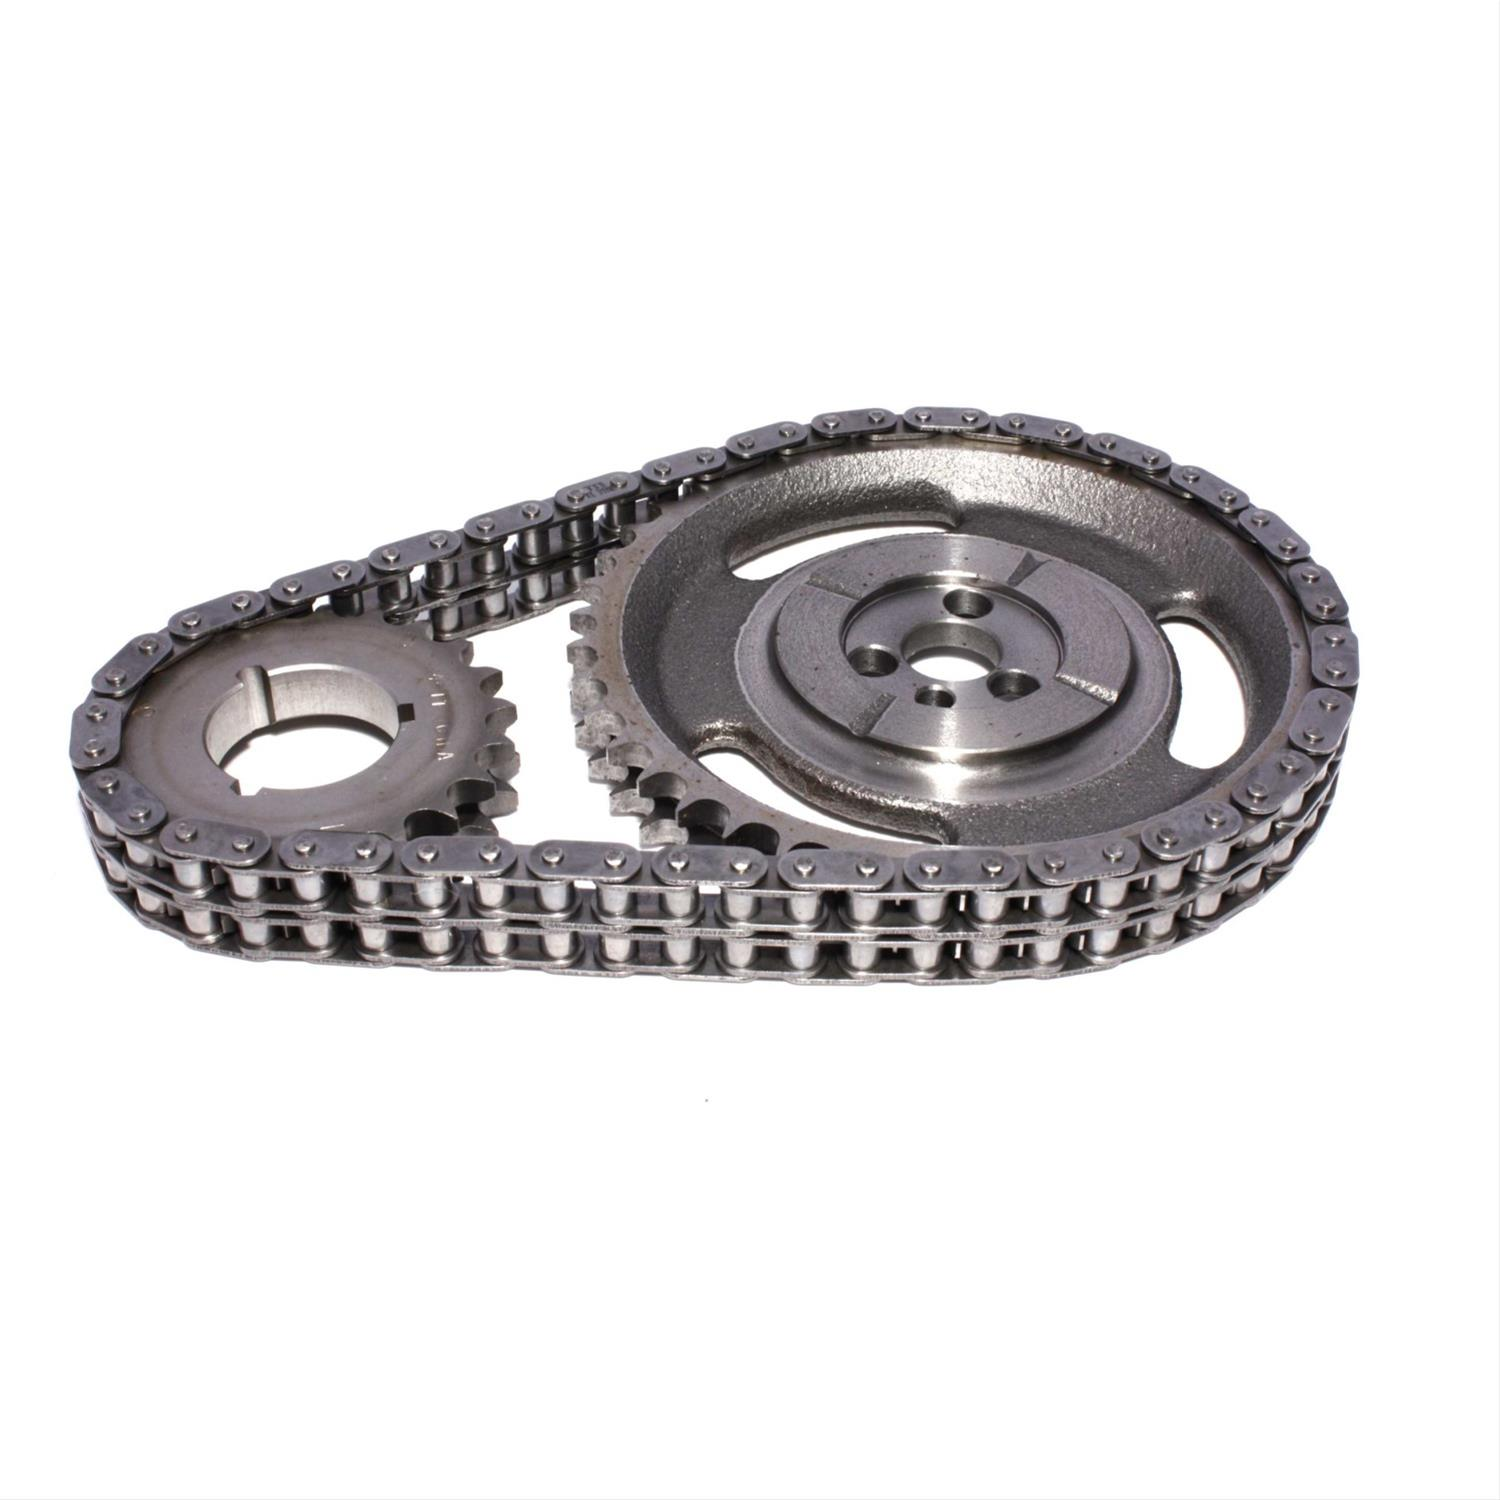 Summit Cam Bearing Tool: COMP Cams Hi-Tech Roller Race Timing Set 3136 Chevy 4.3L